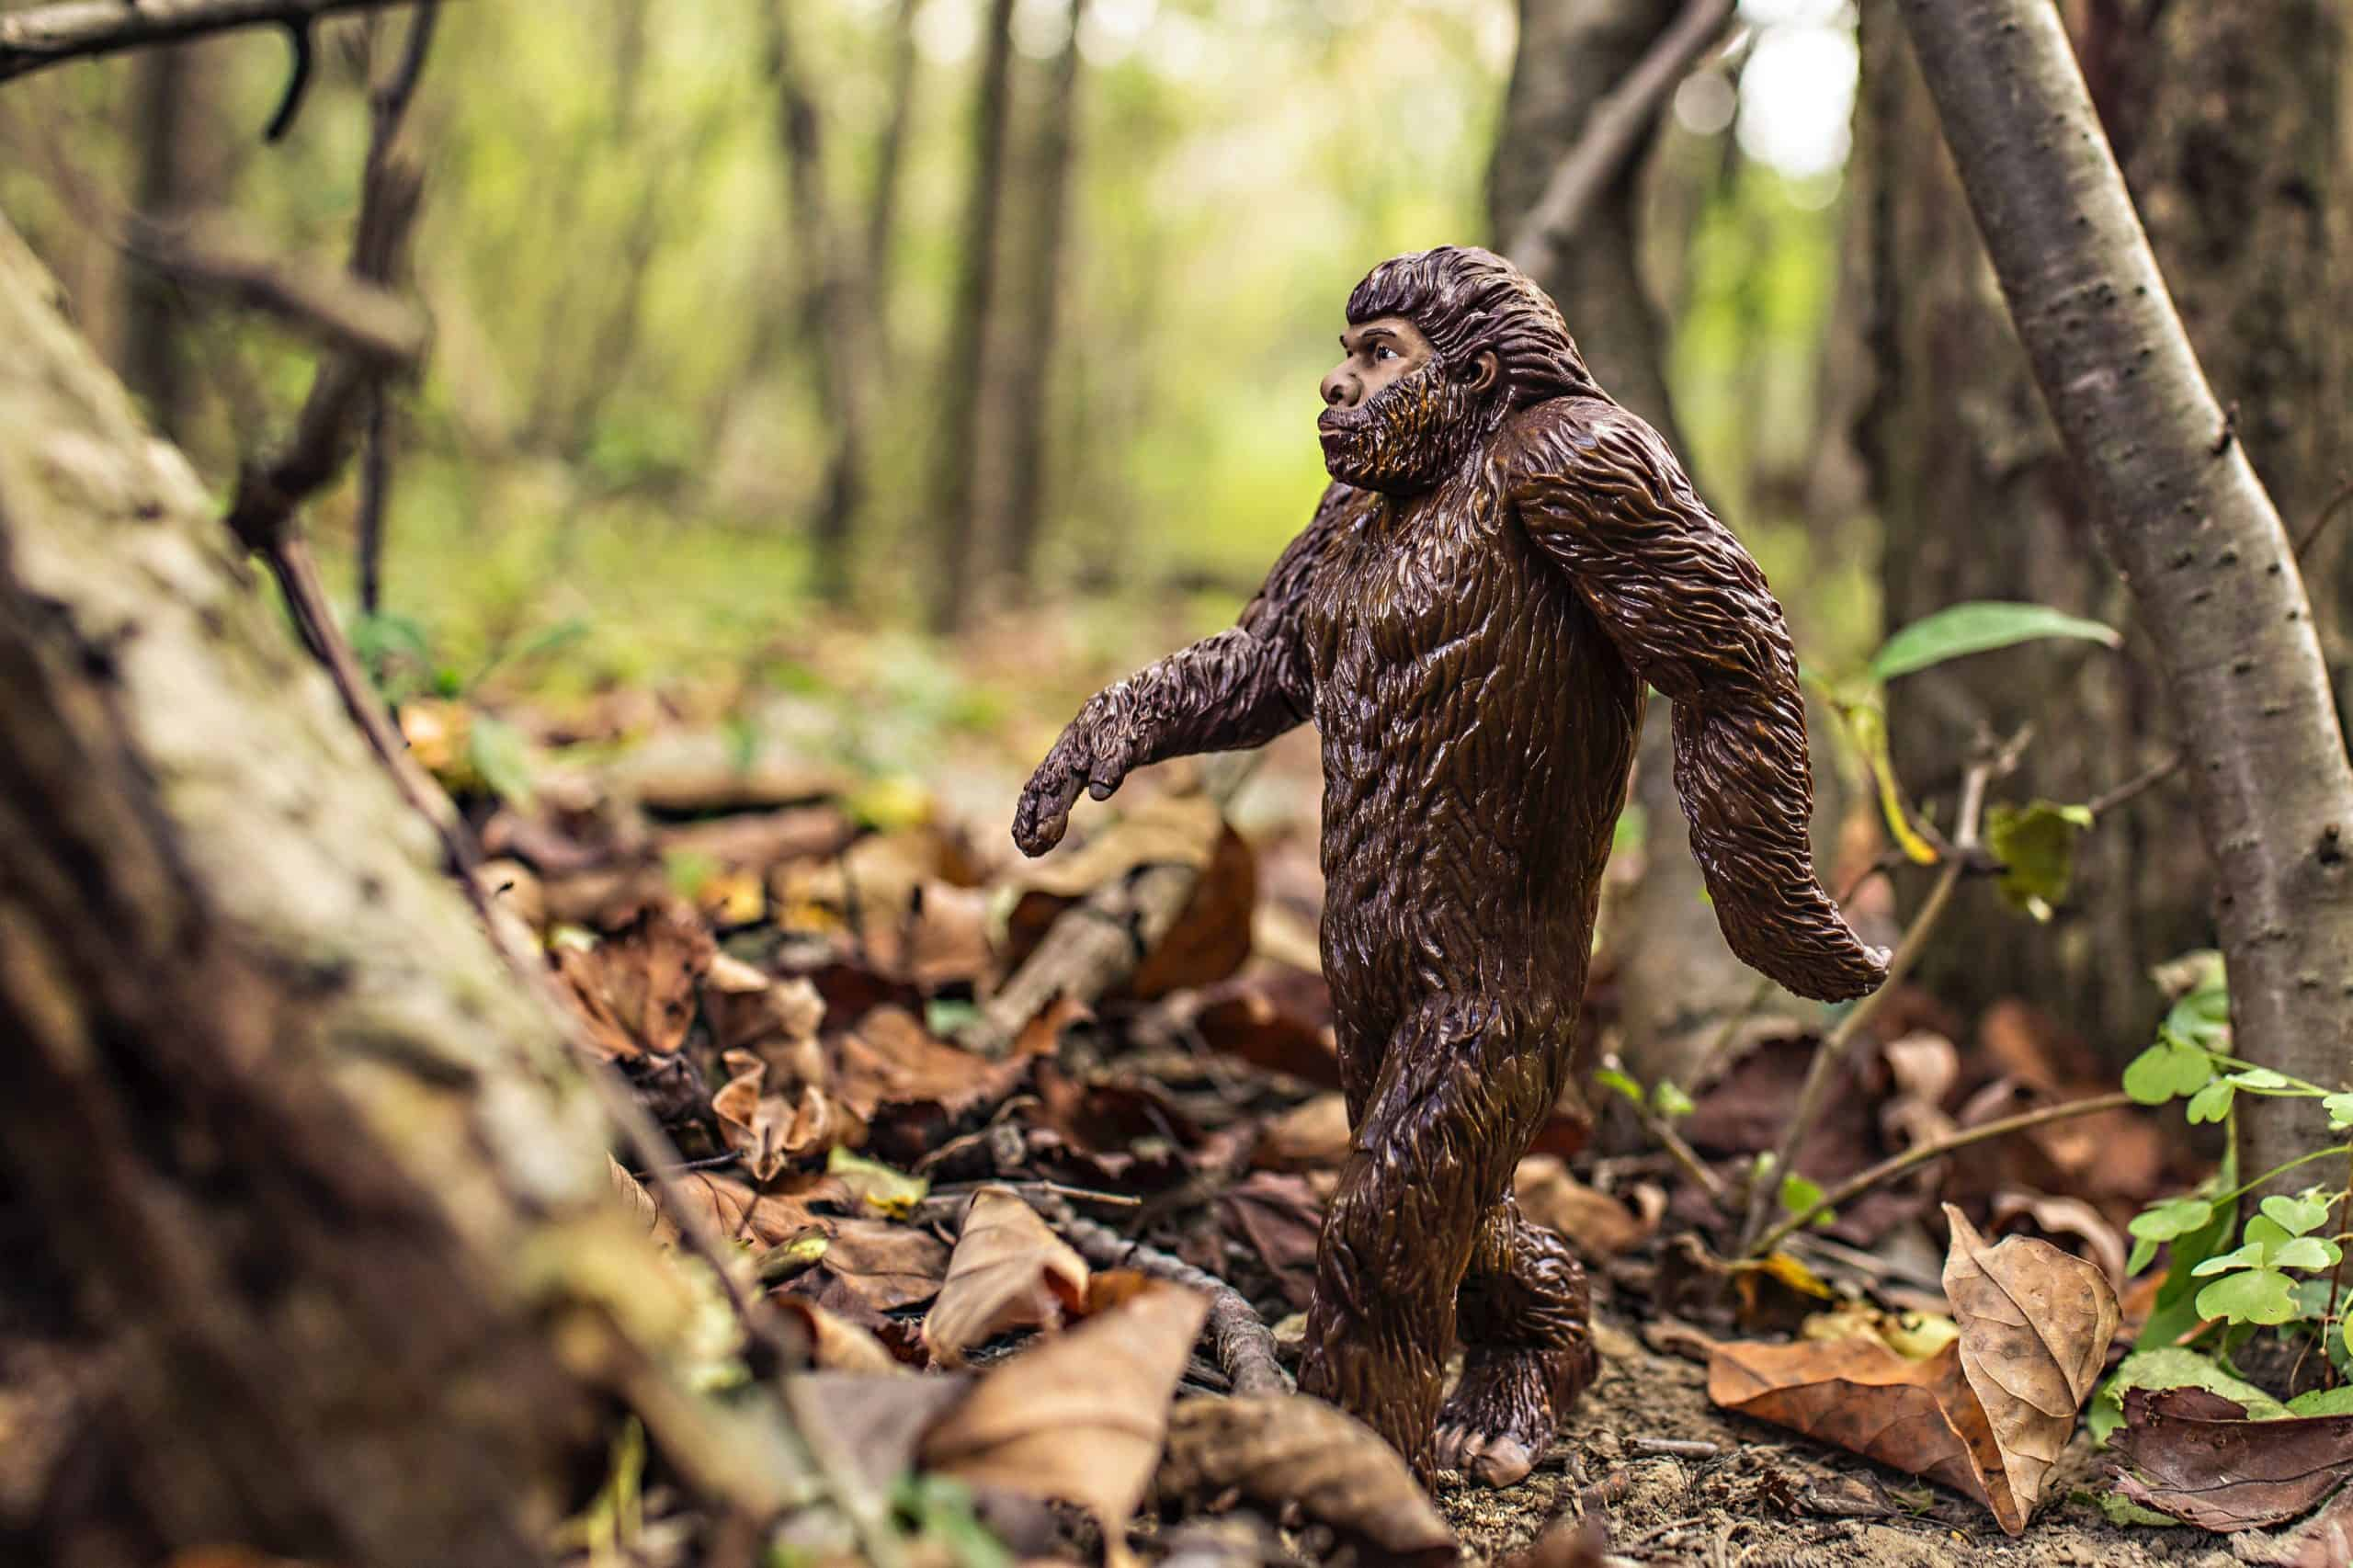 Best Cryptozoology course tutorial class certification training online